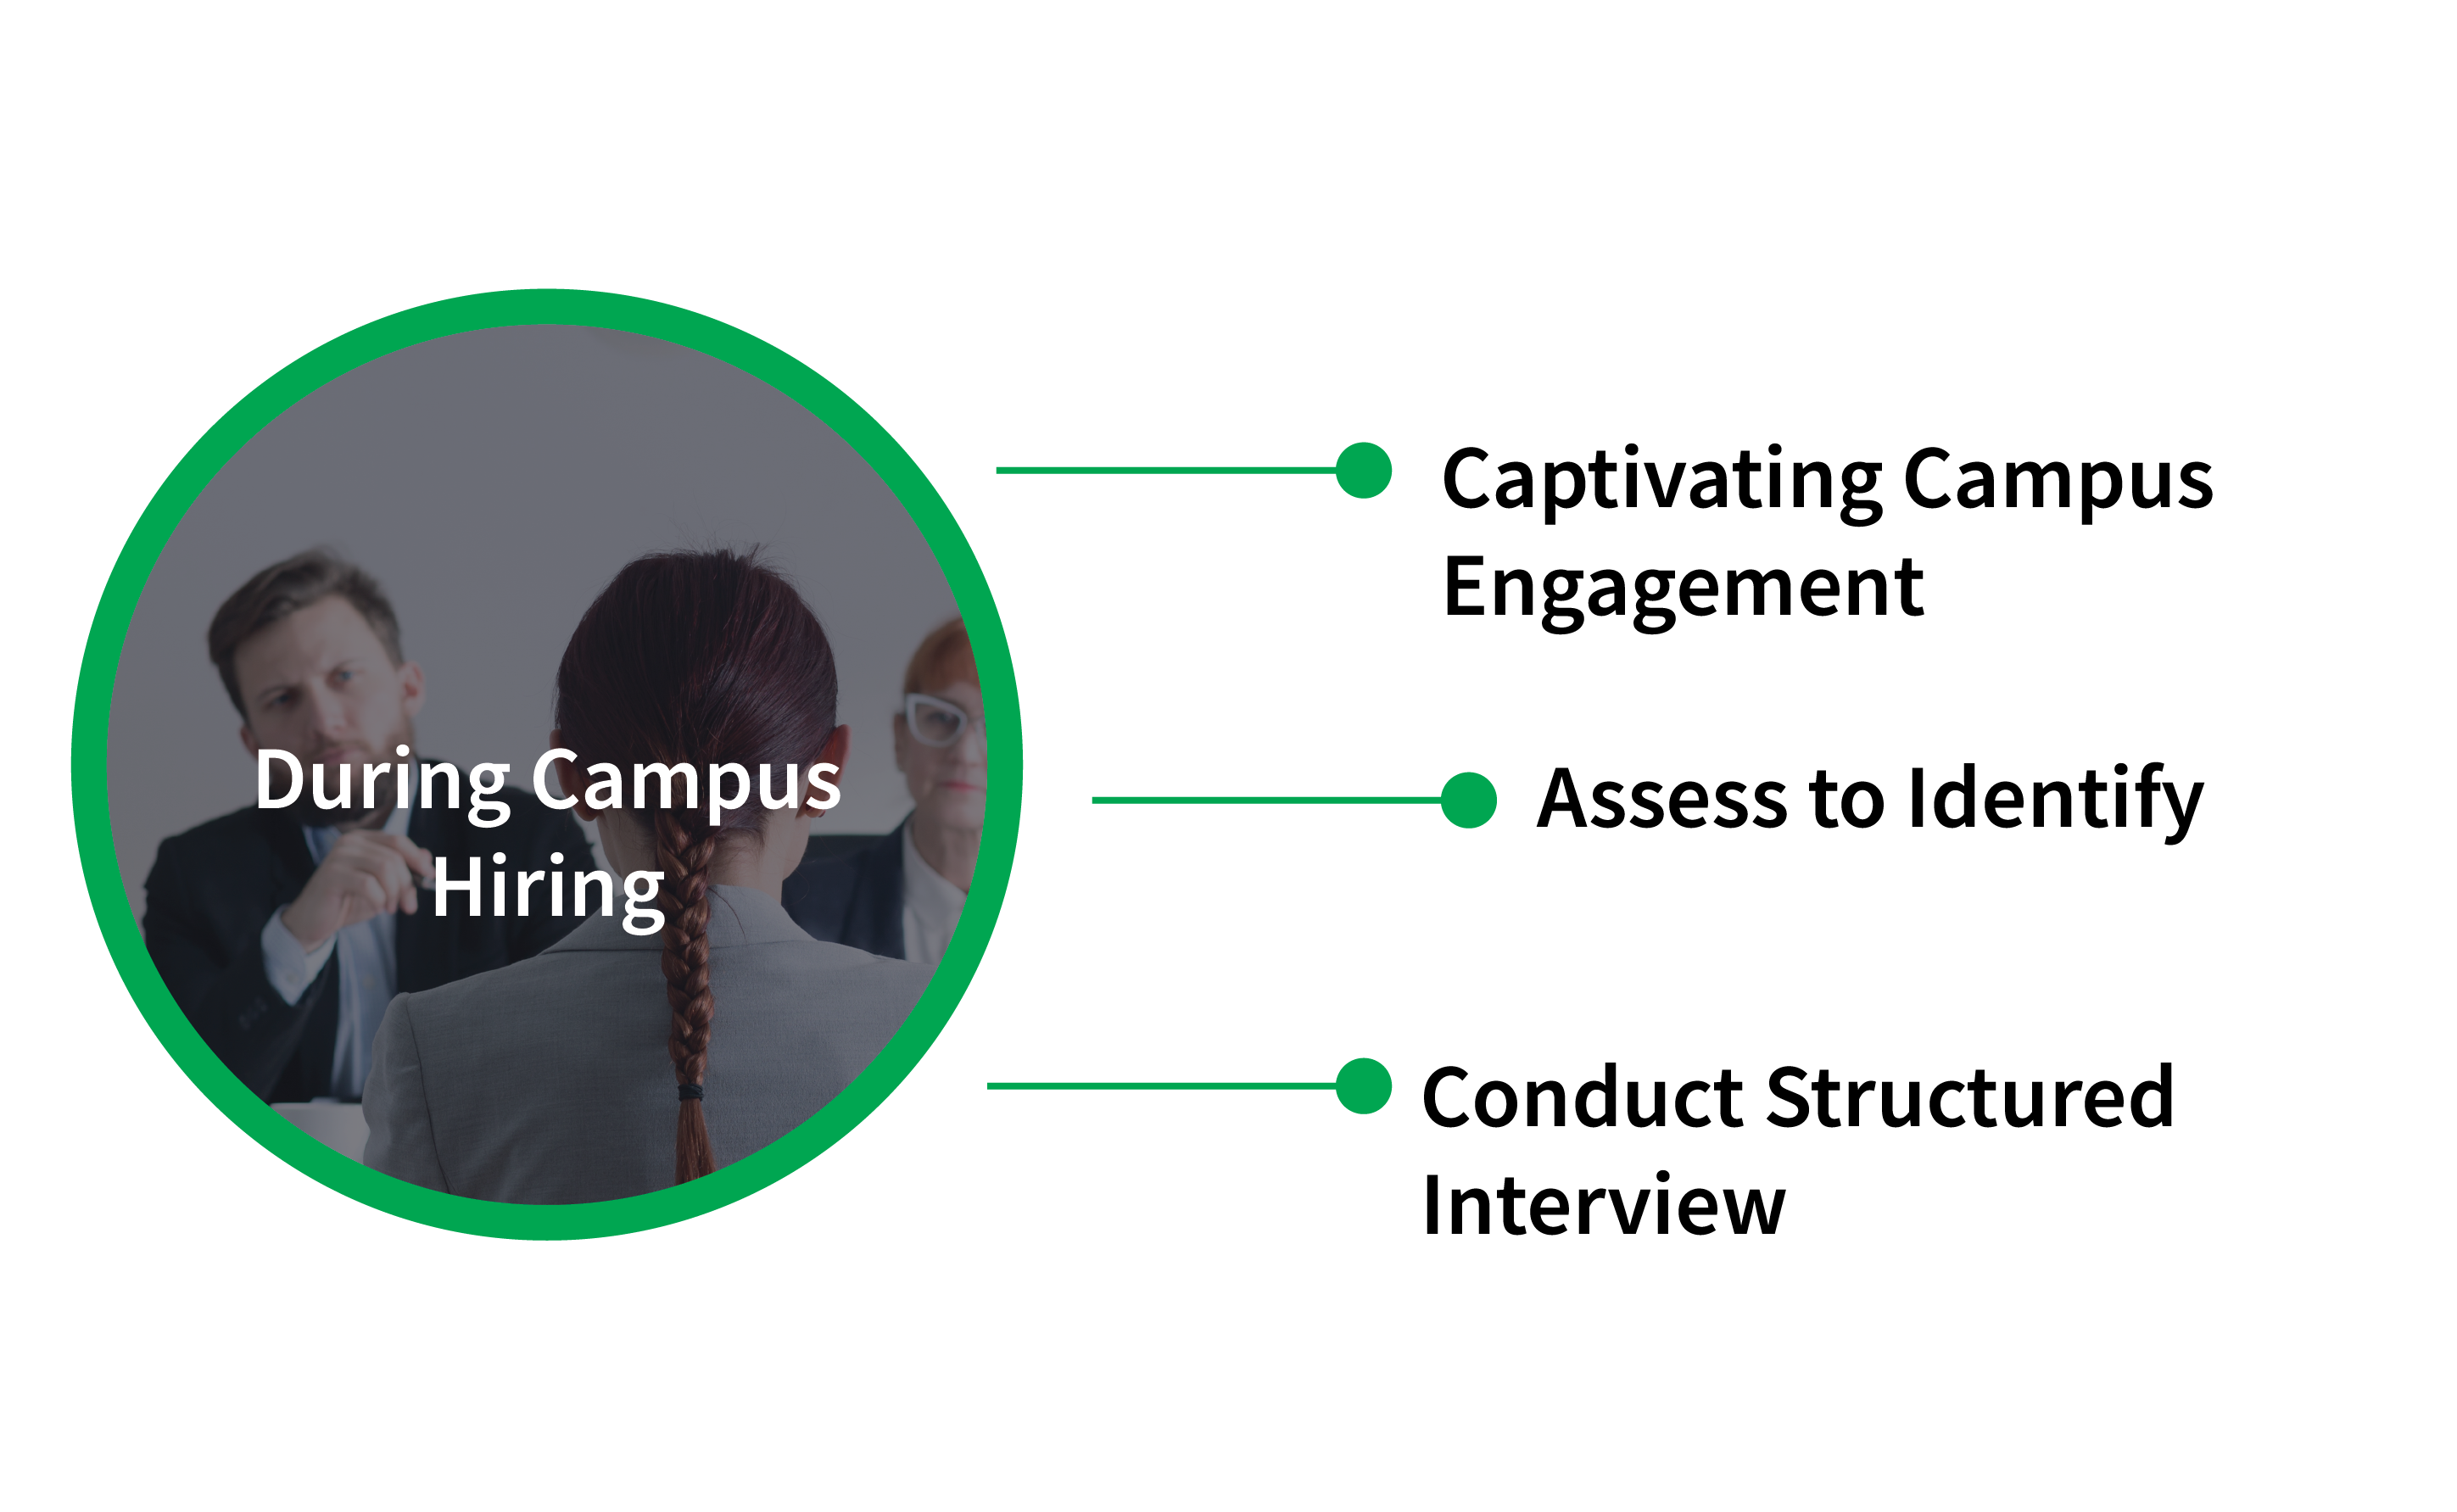 Campus Recruitment - Strategy During Campus Hiring